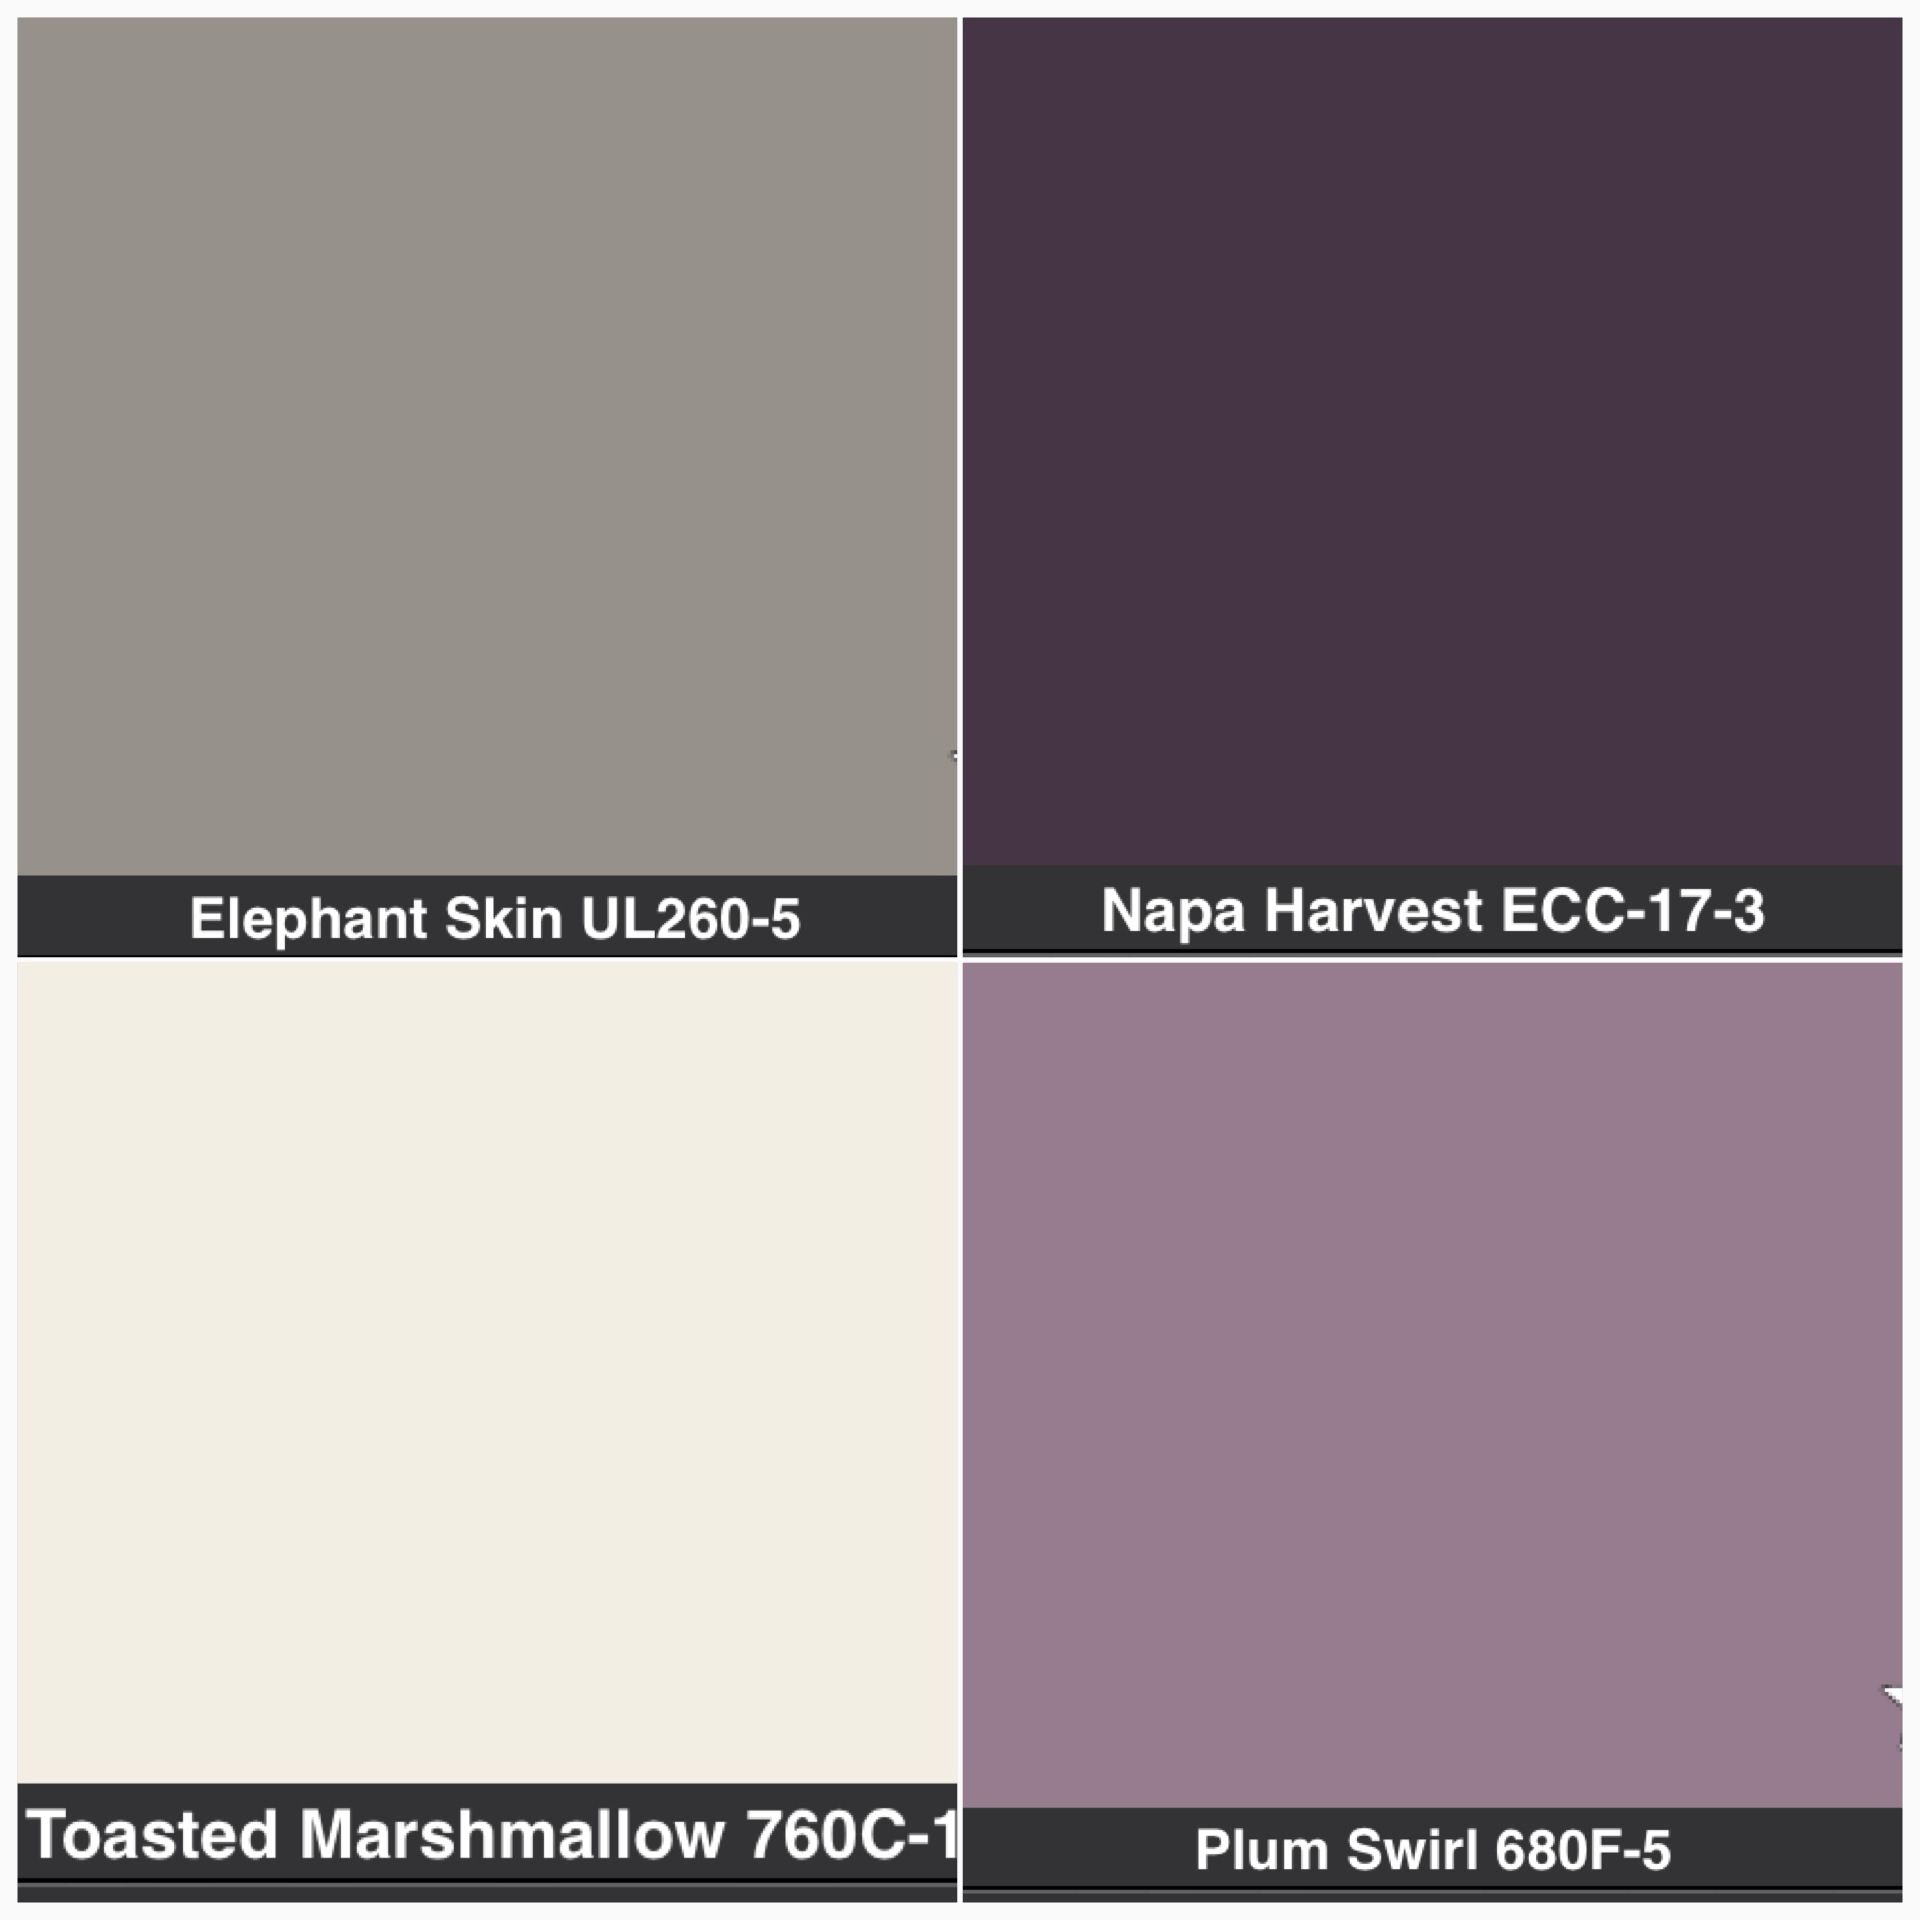 Bedroom colors grey purple - Masterbathroom Purple Or Gray Or Cream Cabinets Grey Walls With Purple Accent Wall Guest Bedroom Colorsbathroom